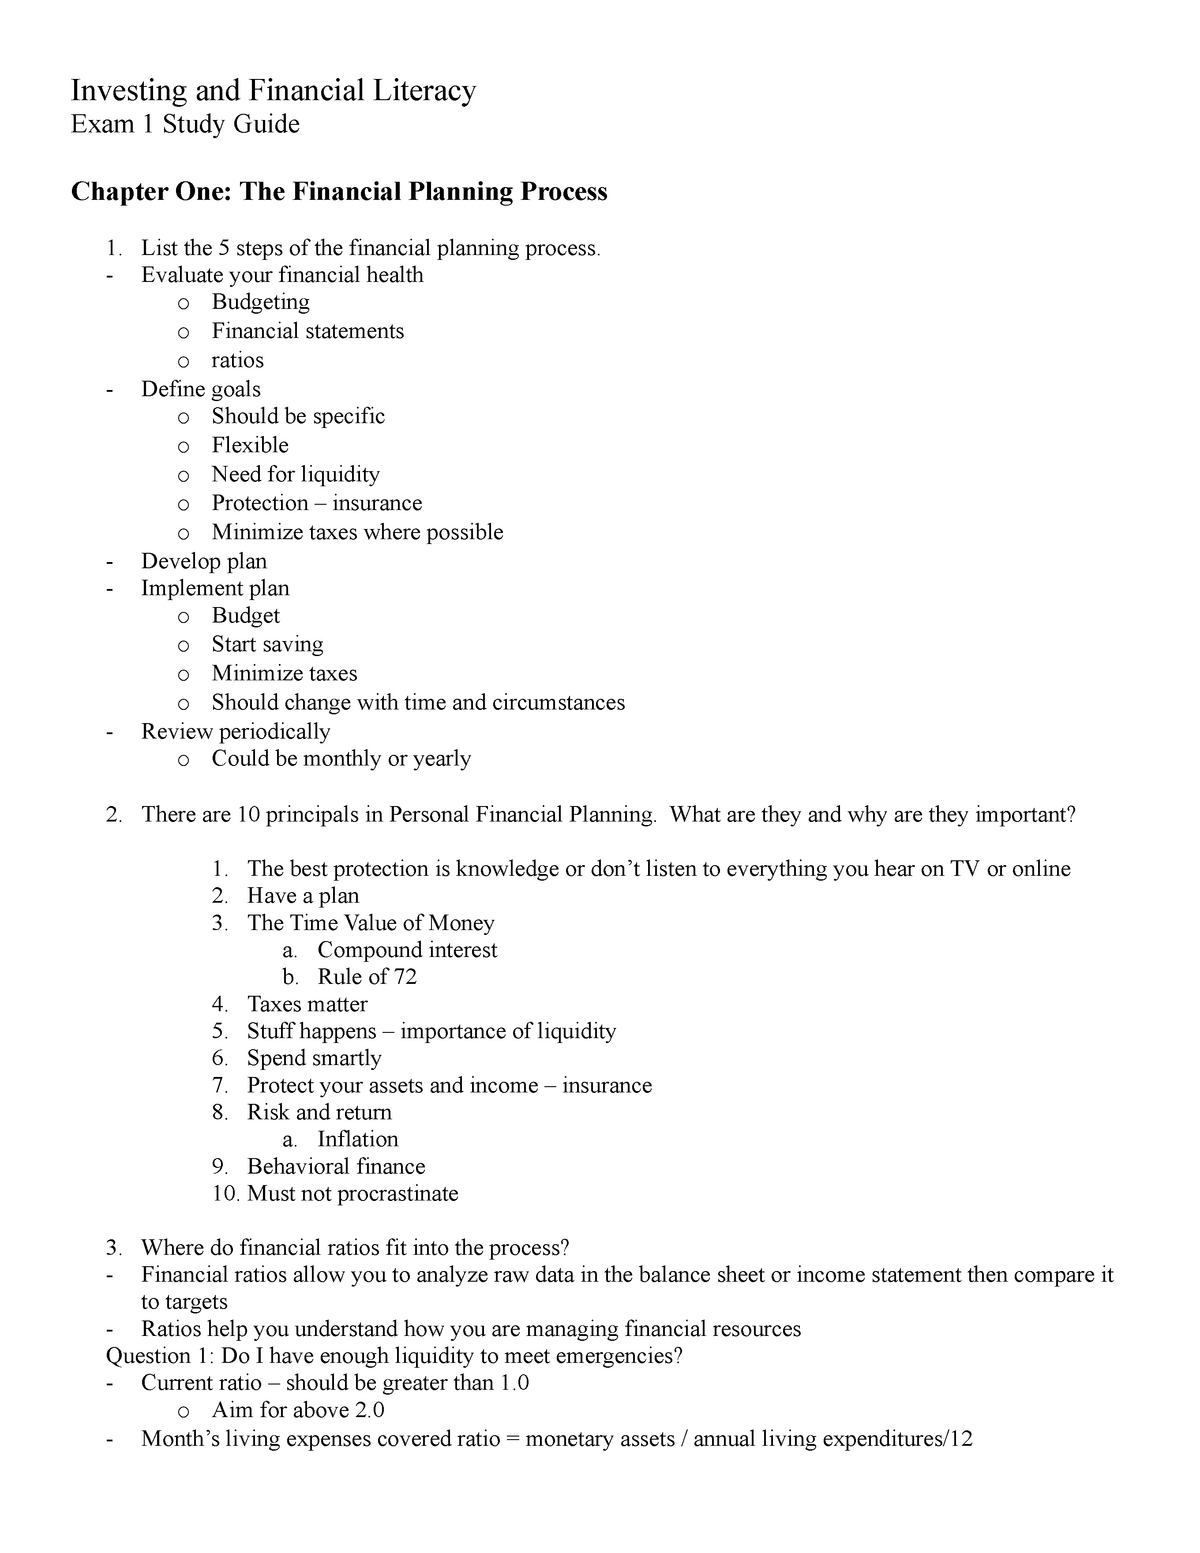 EXAM ONE Study Guide personal finance - FIN2114 - StuDocu